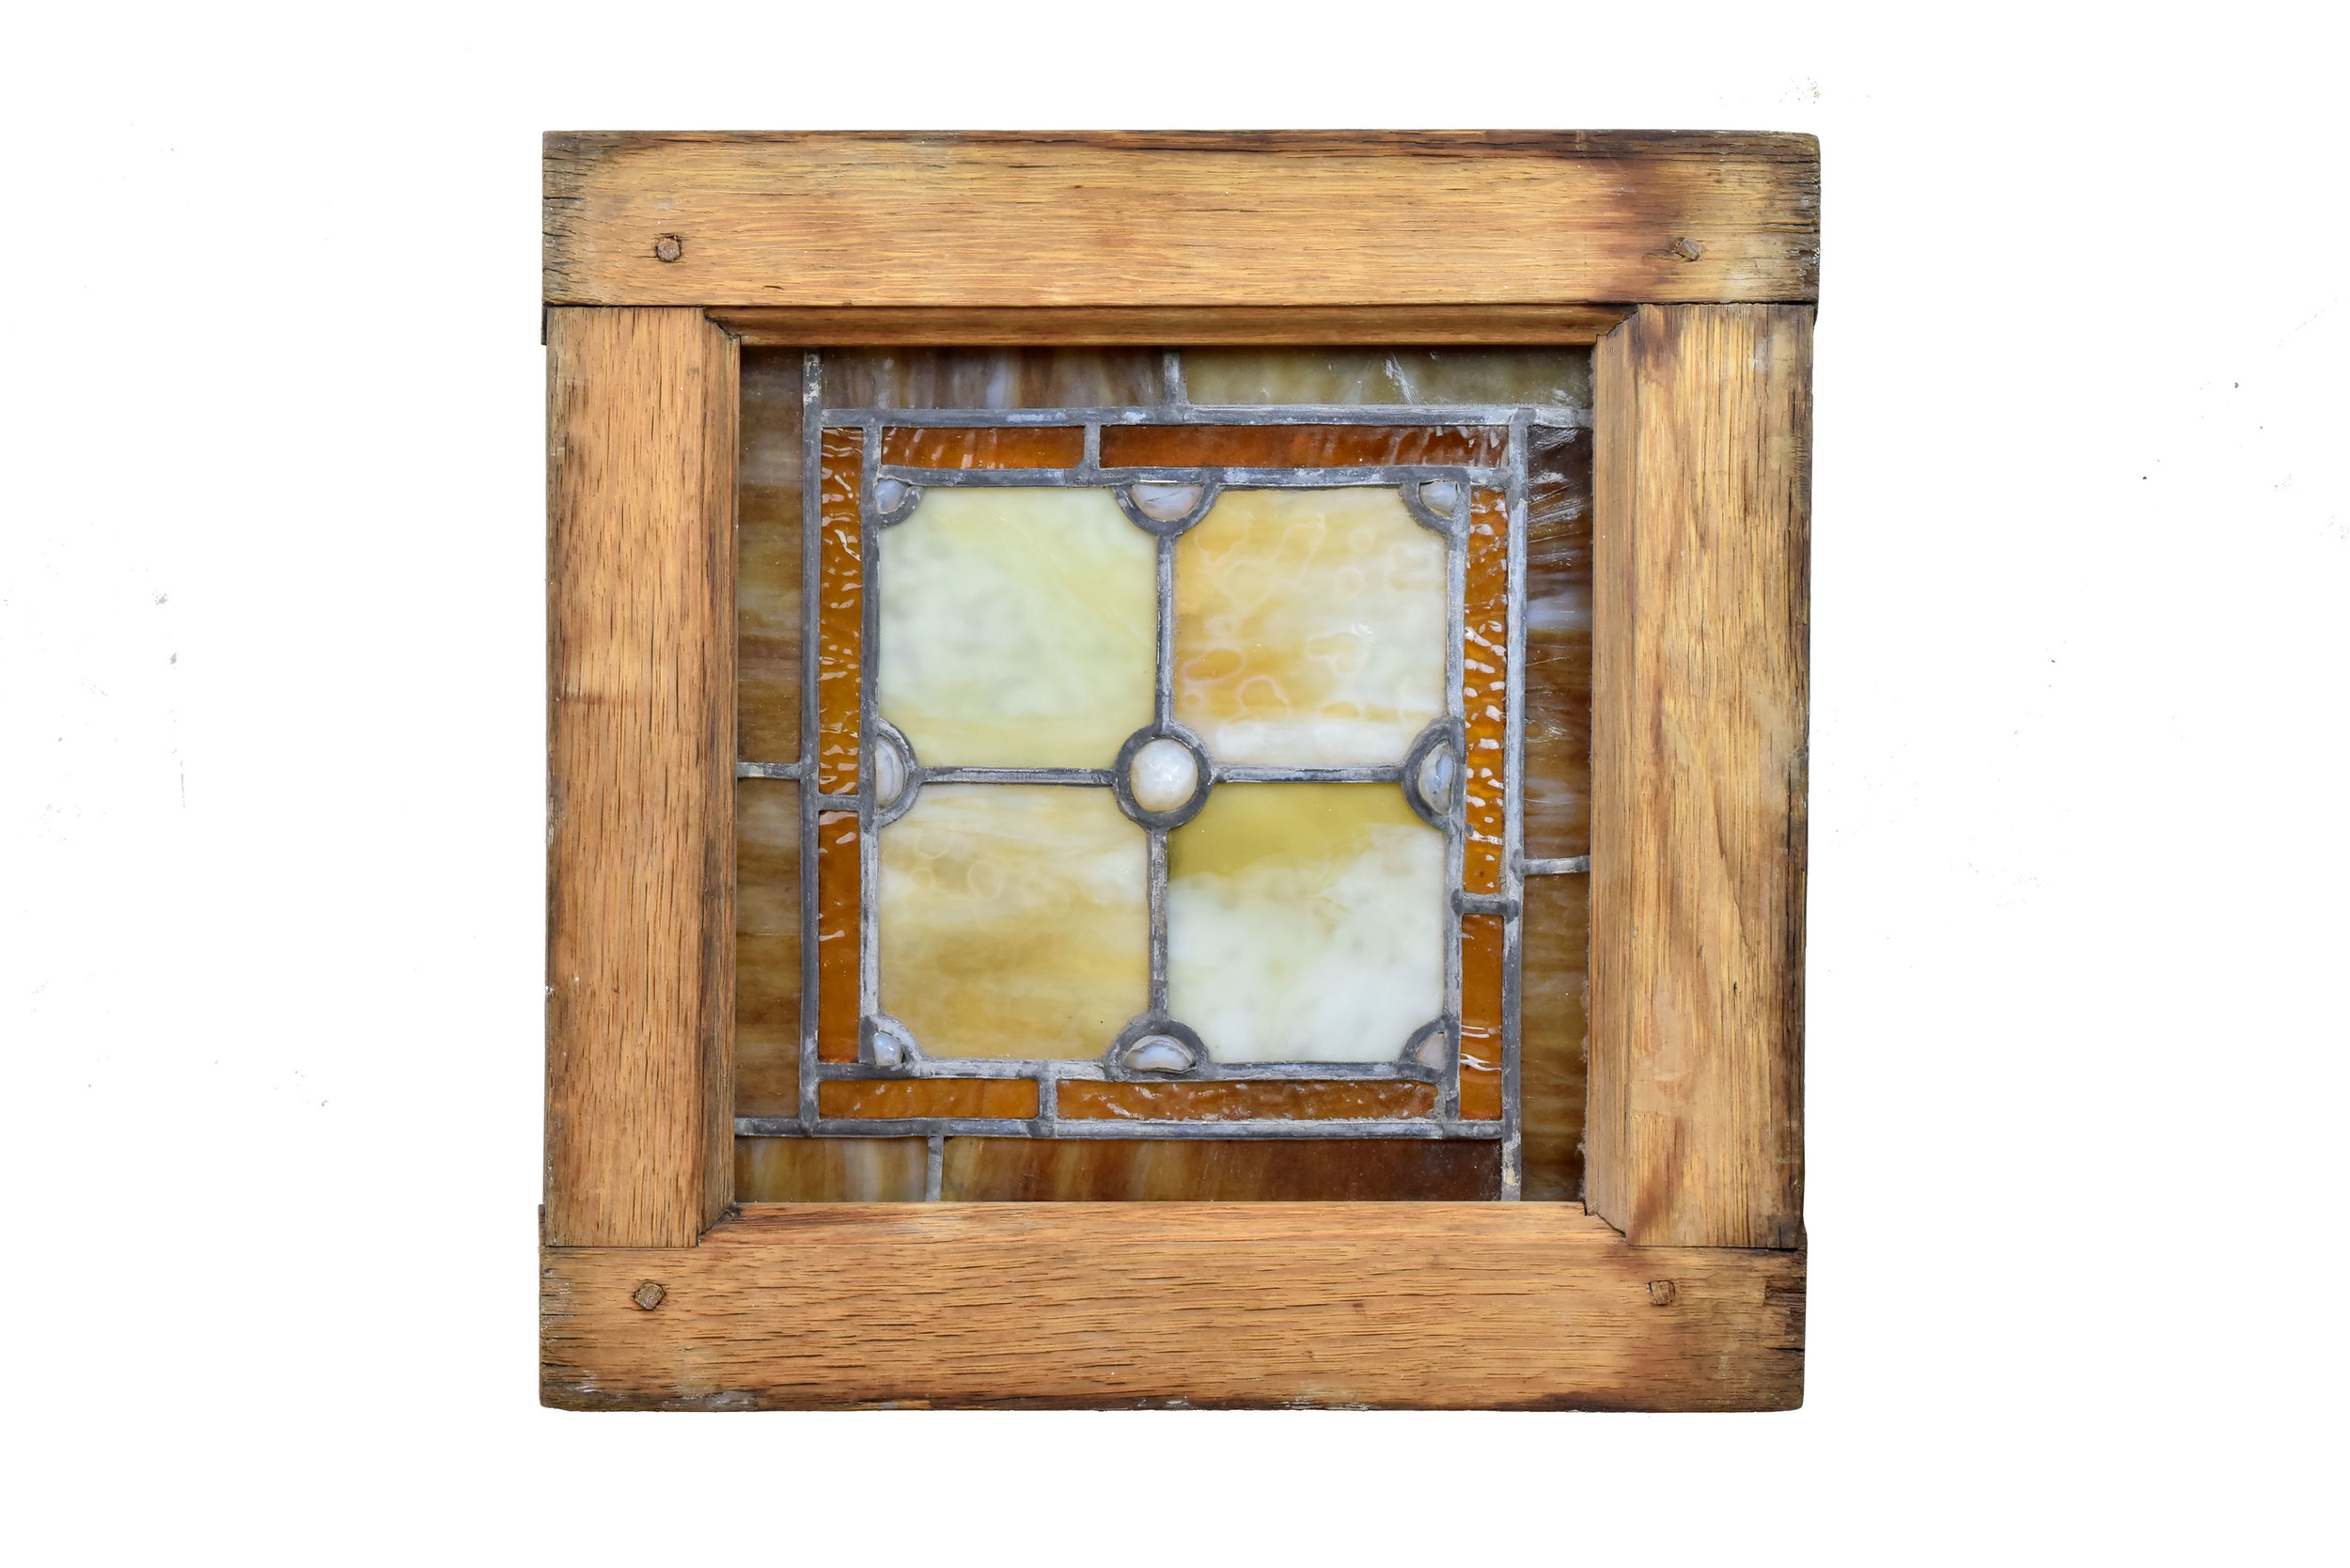 47198-small-square-victorian-window-no-backlighting.jpg